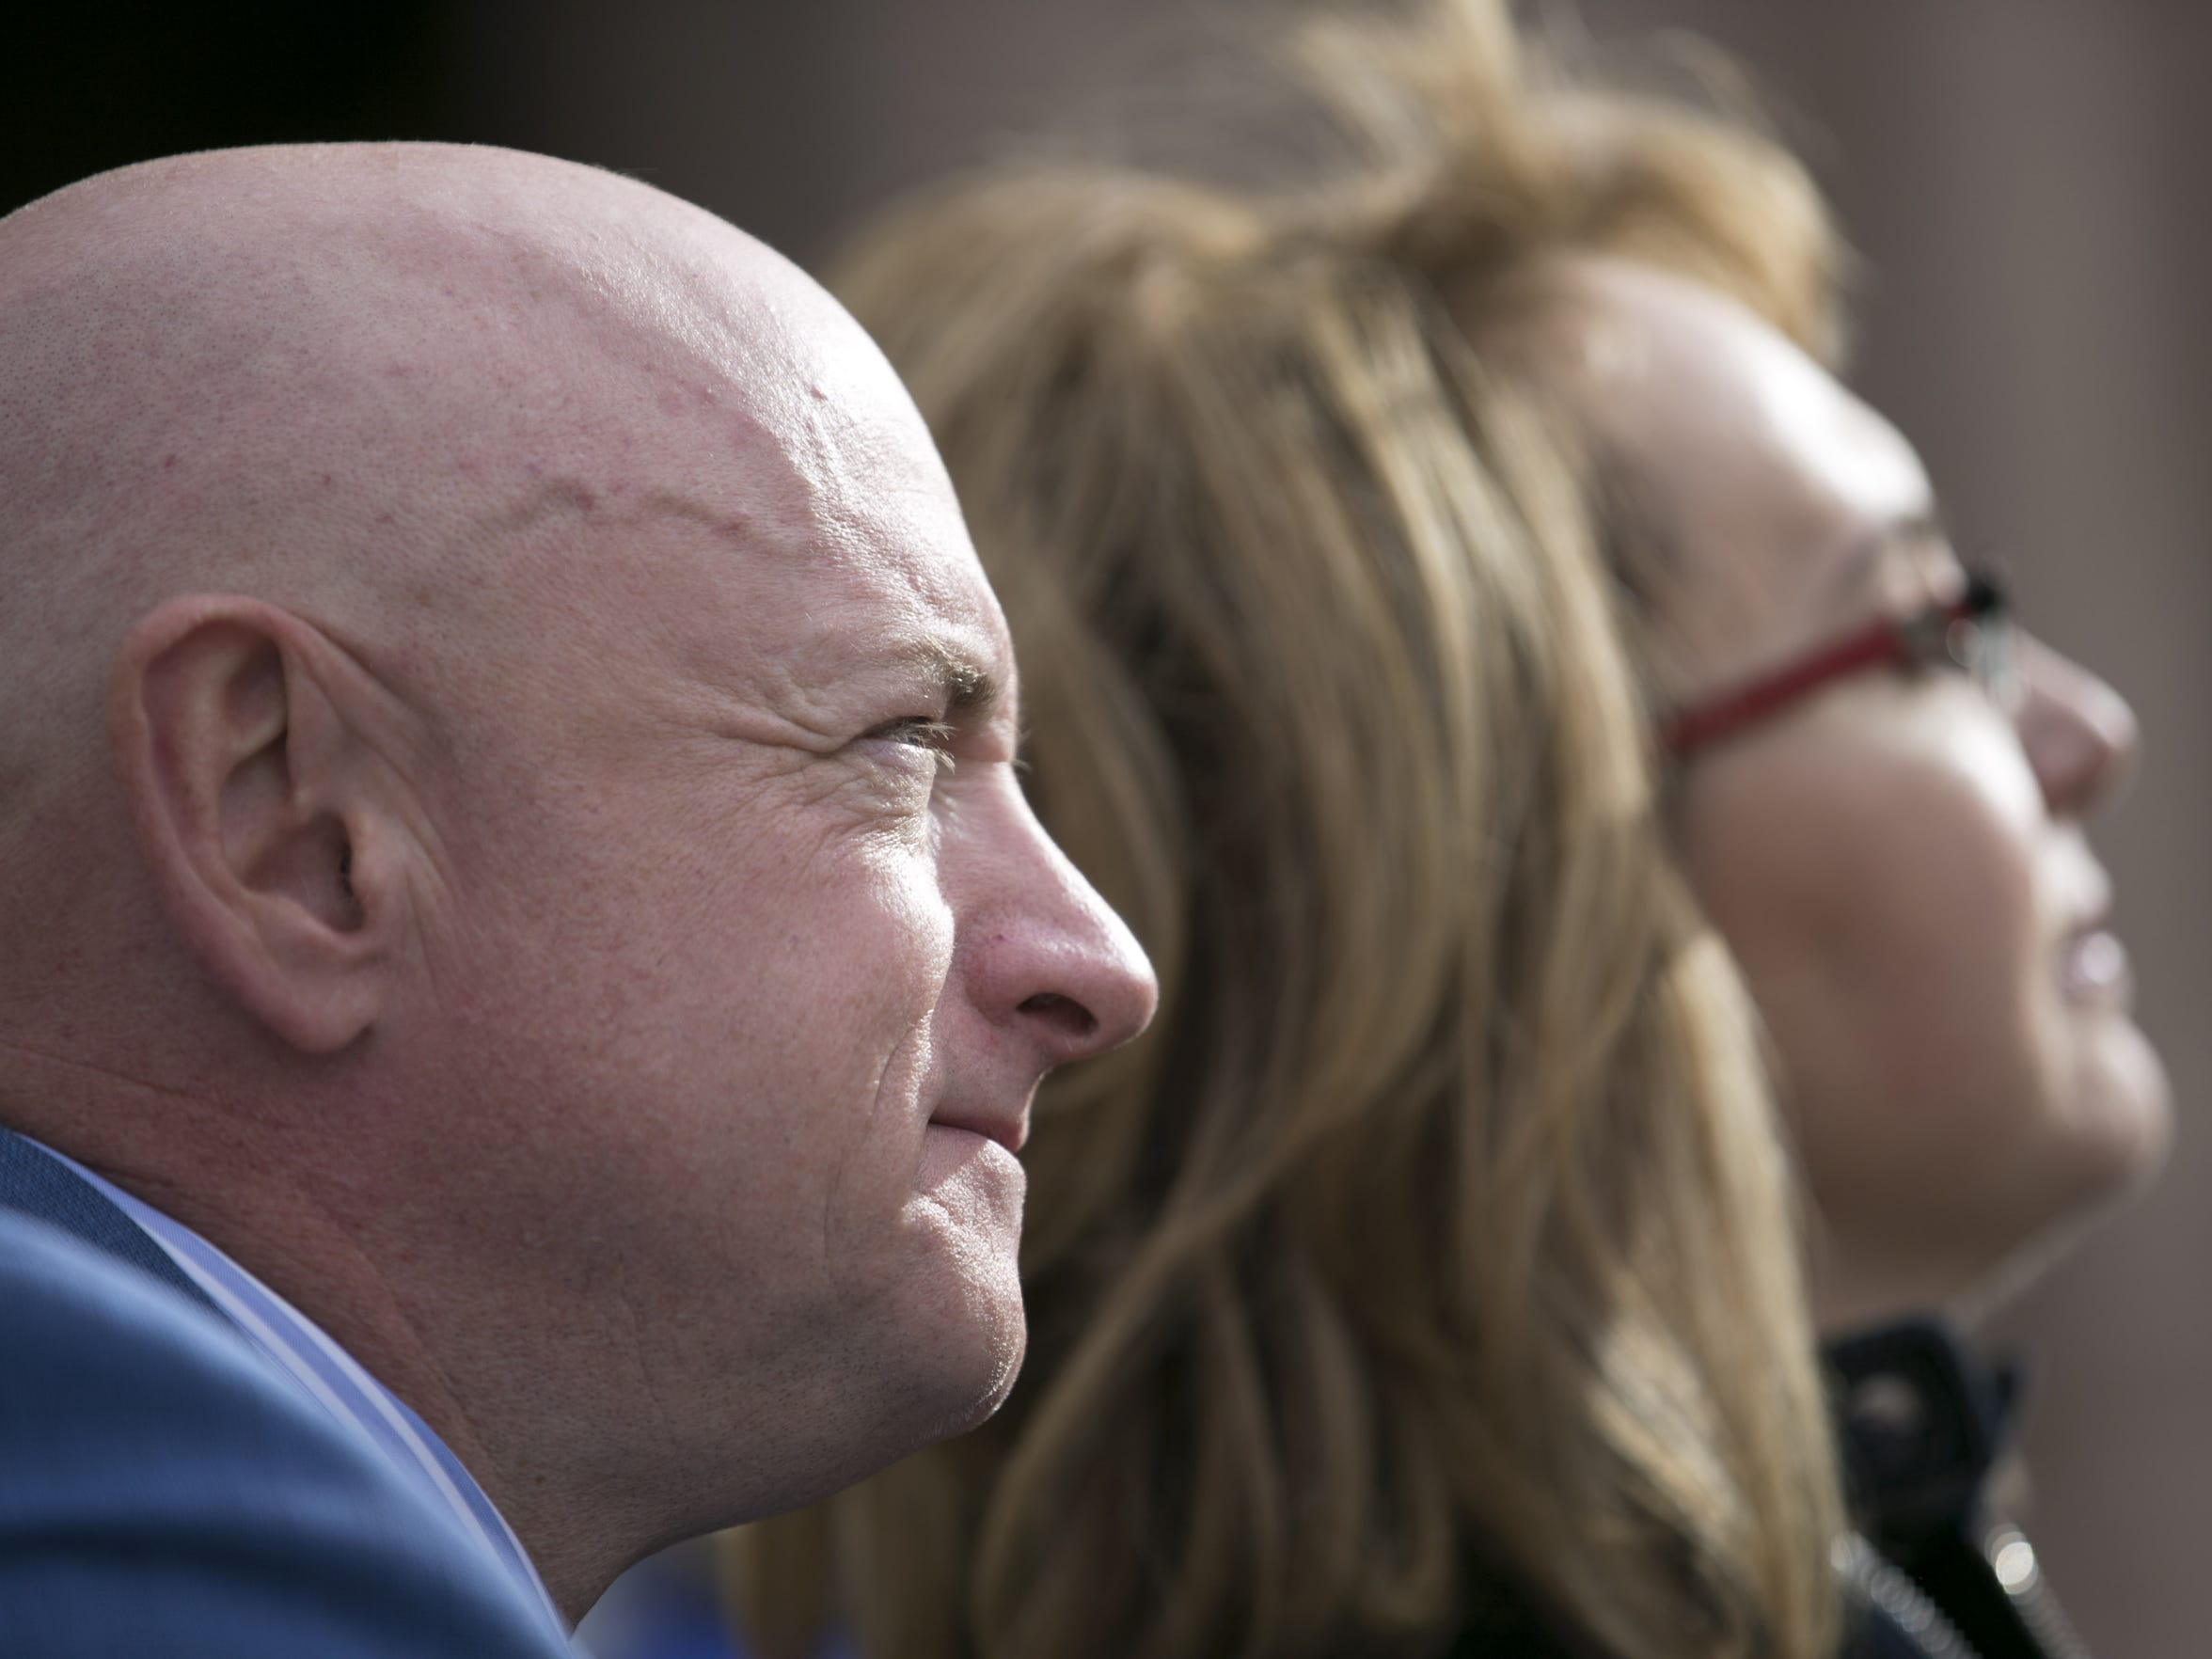 Mark Kelly says he wanted his relationship with wife Gabby GIffords to stay the same after the shooting that injured the former congresswoman in 2011. Part of him pretends it still is. But part of moving on is accepting that nothing will ever be the same, and making it work anyway.